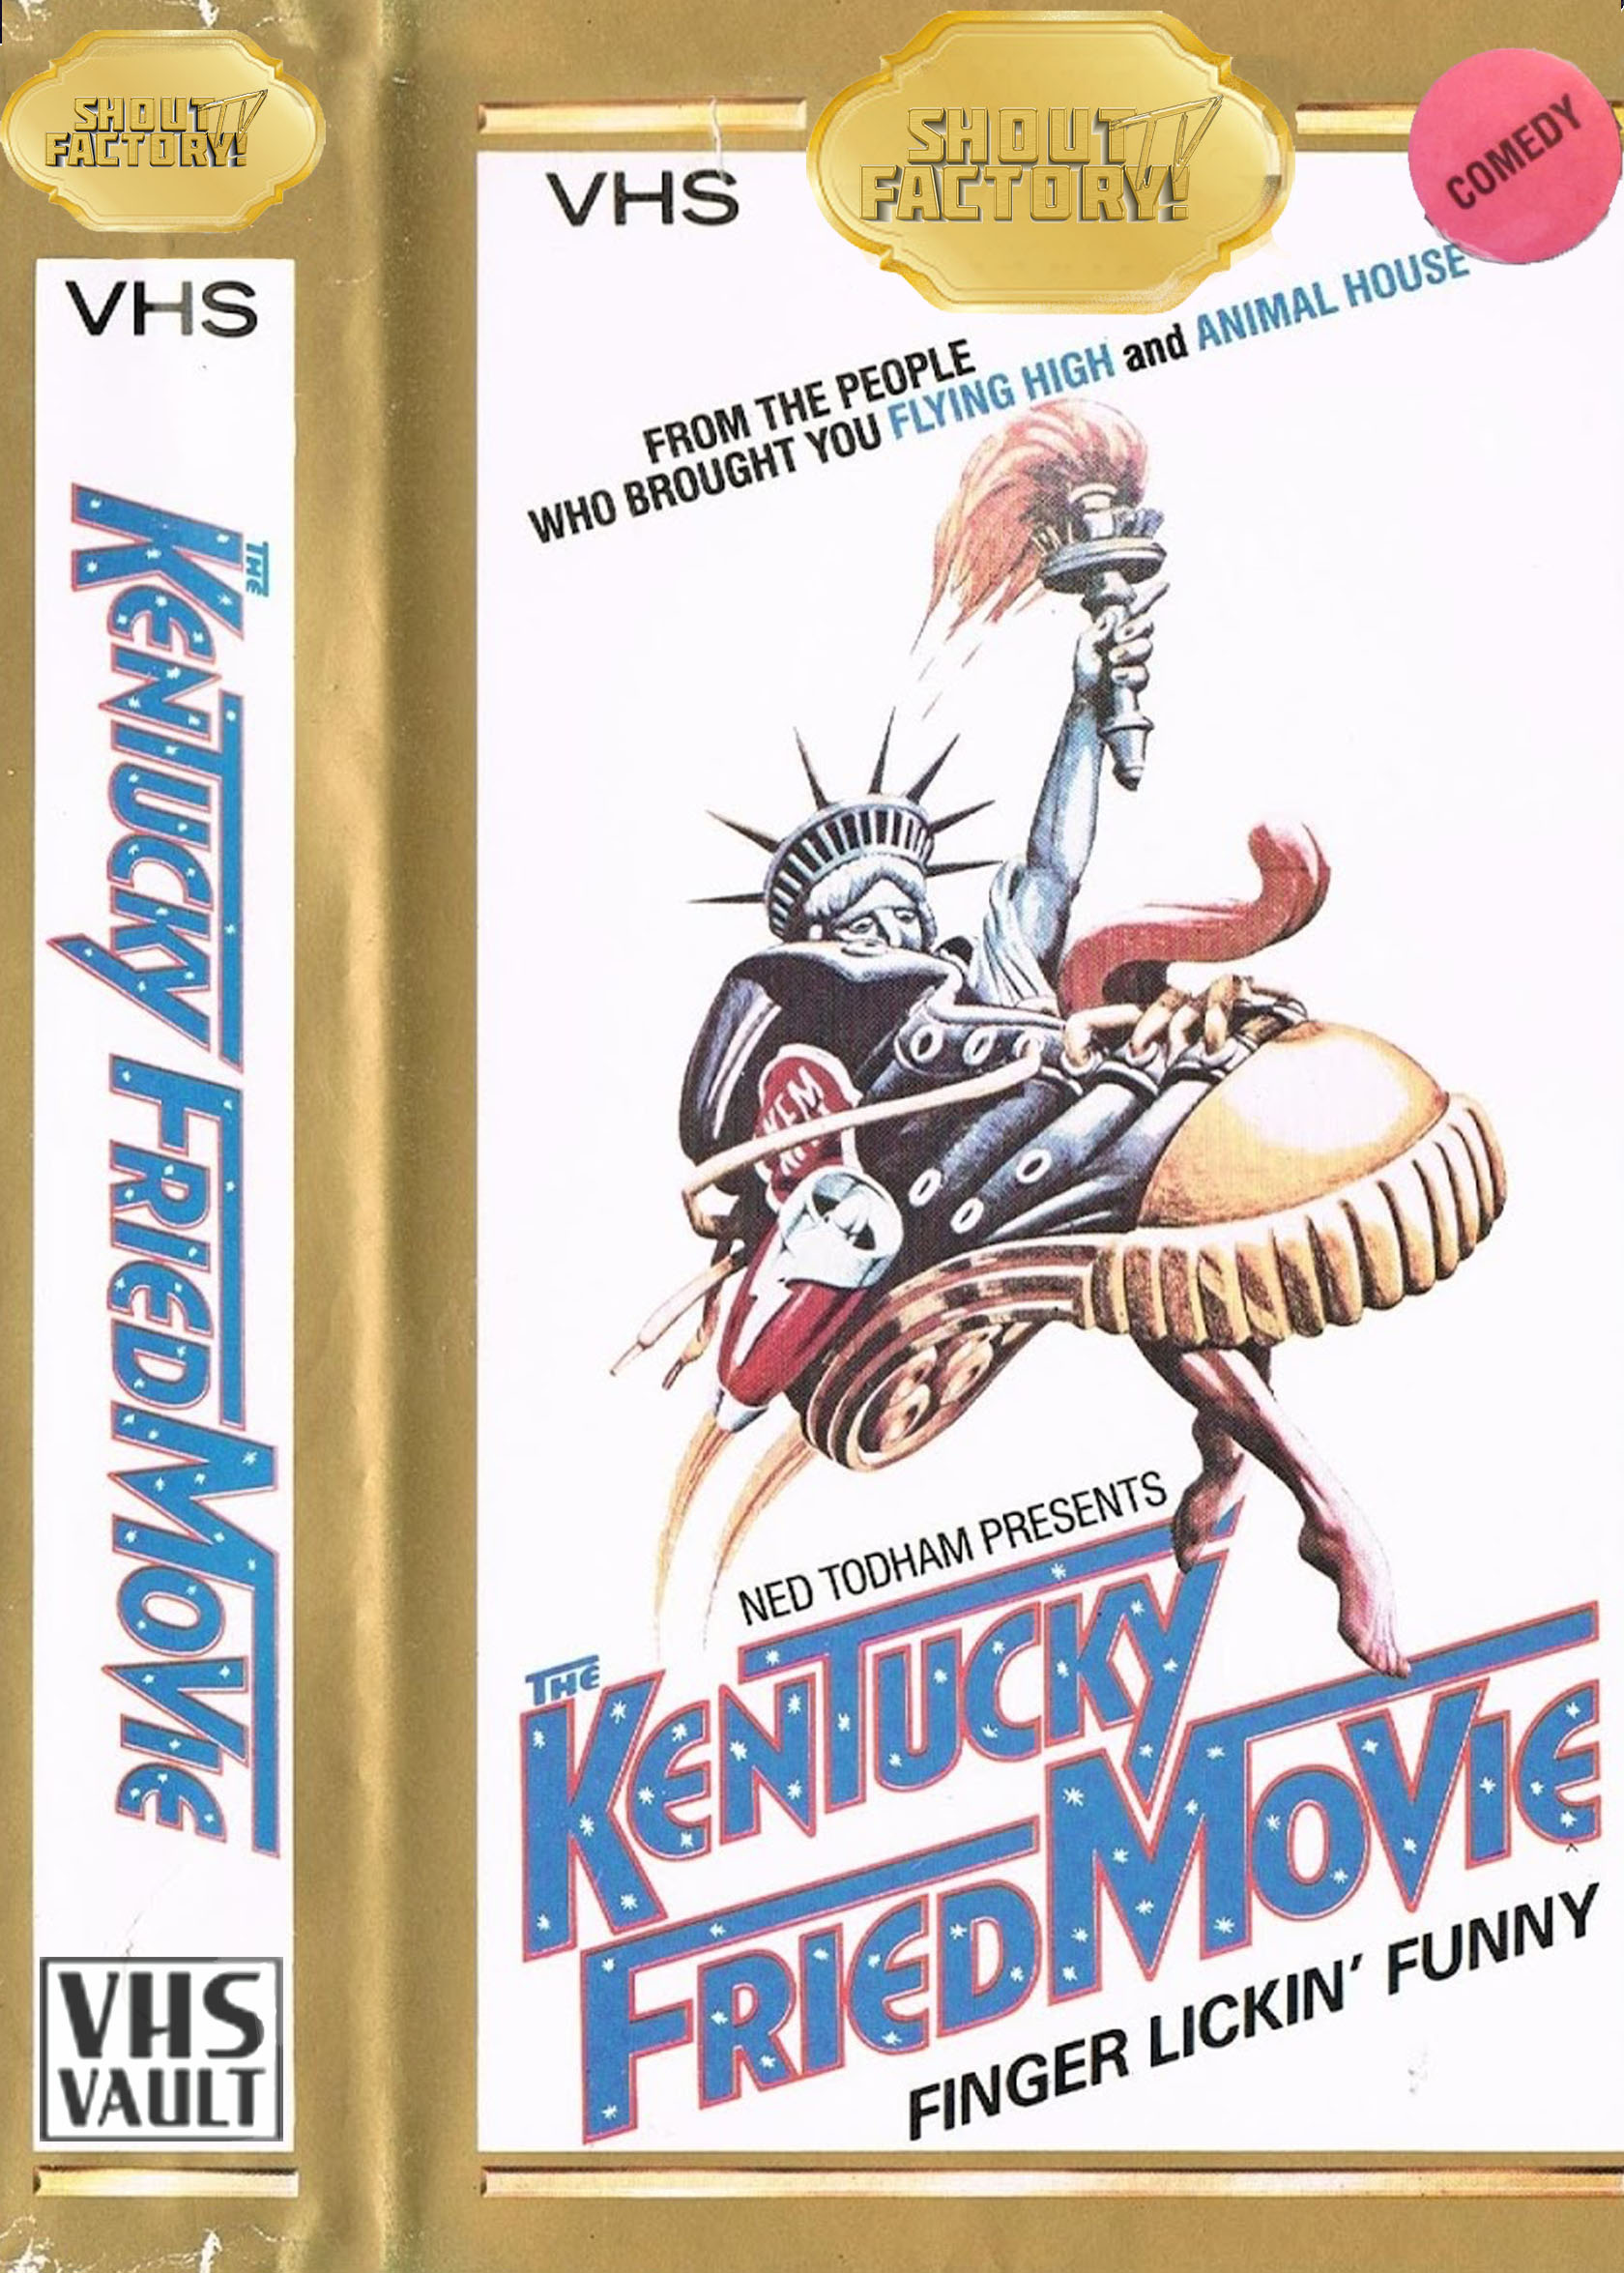 The Kentucky Fried Movie [VHS Vault]